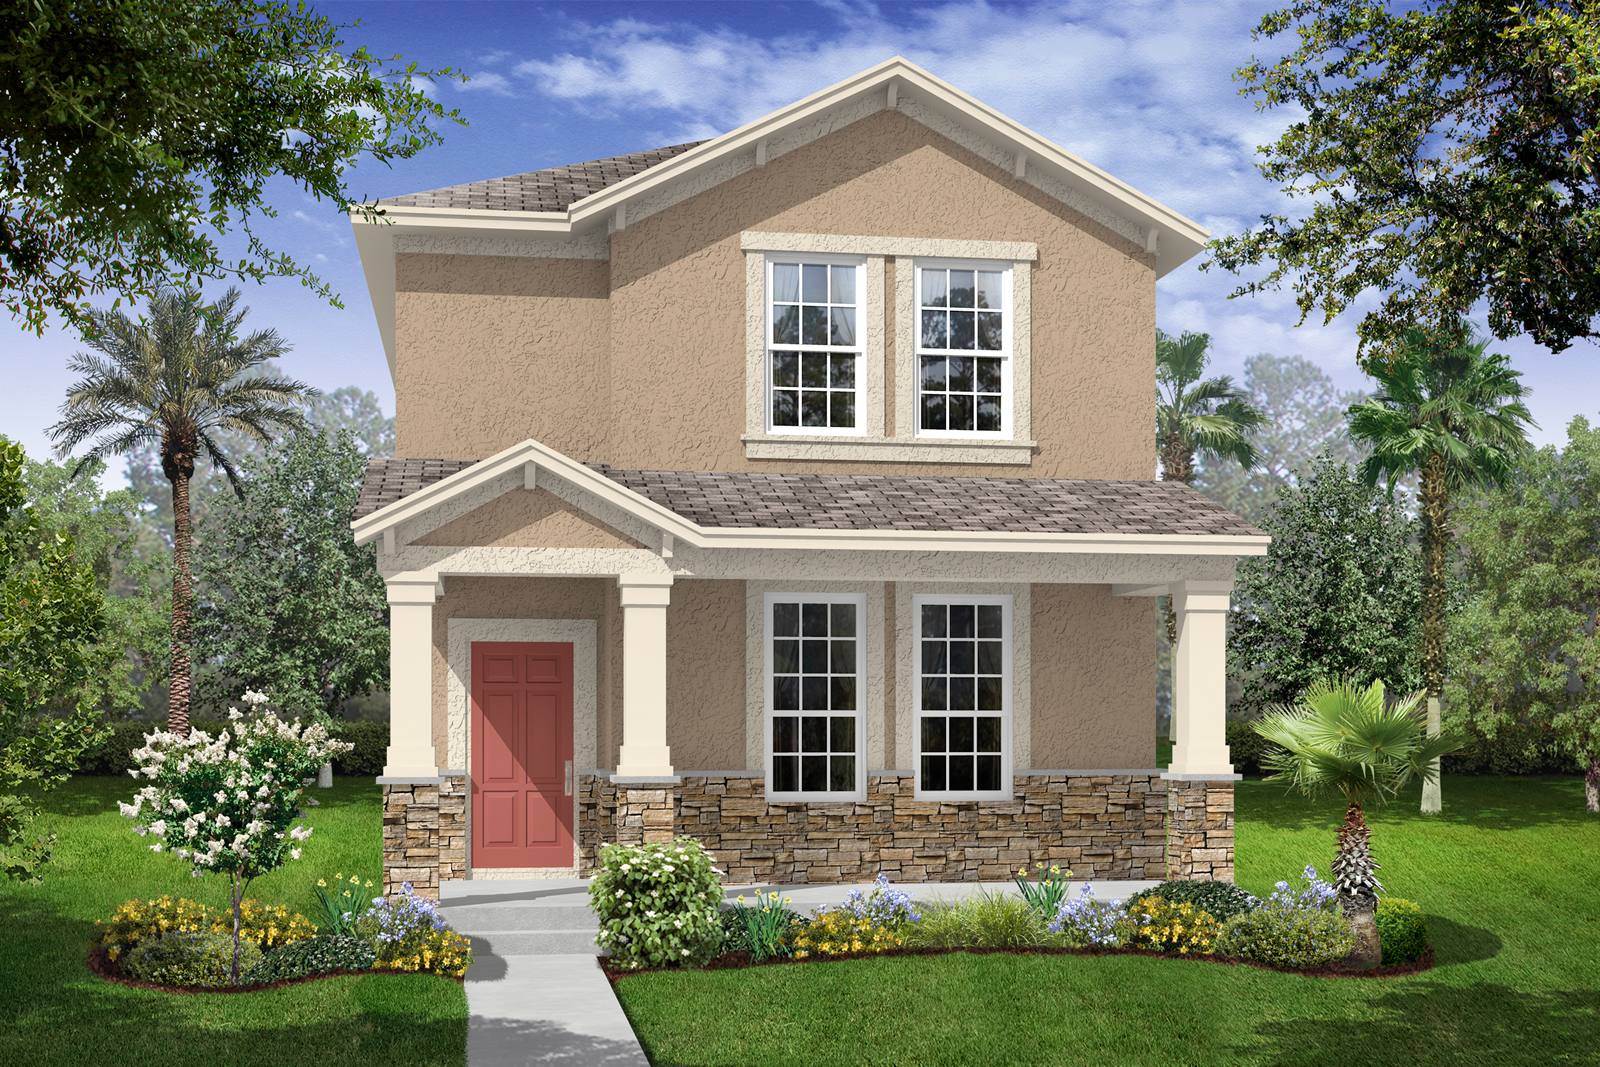 harmony community in st cloud central florida